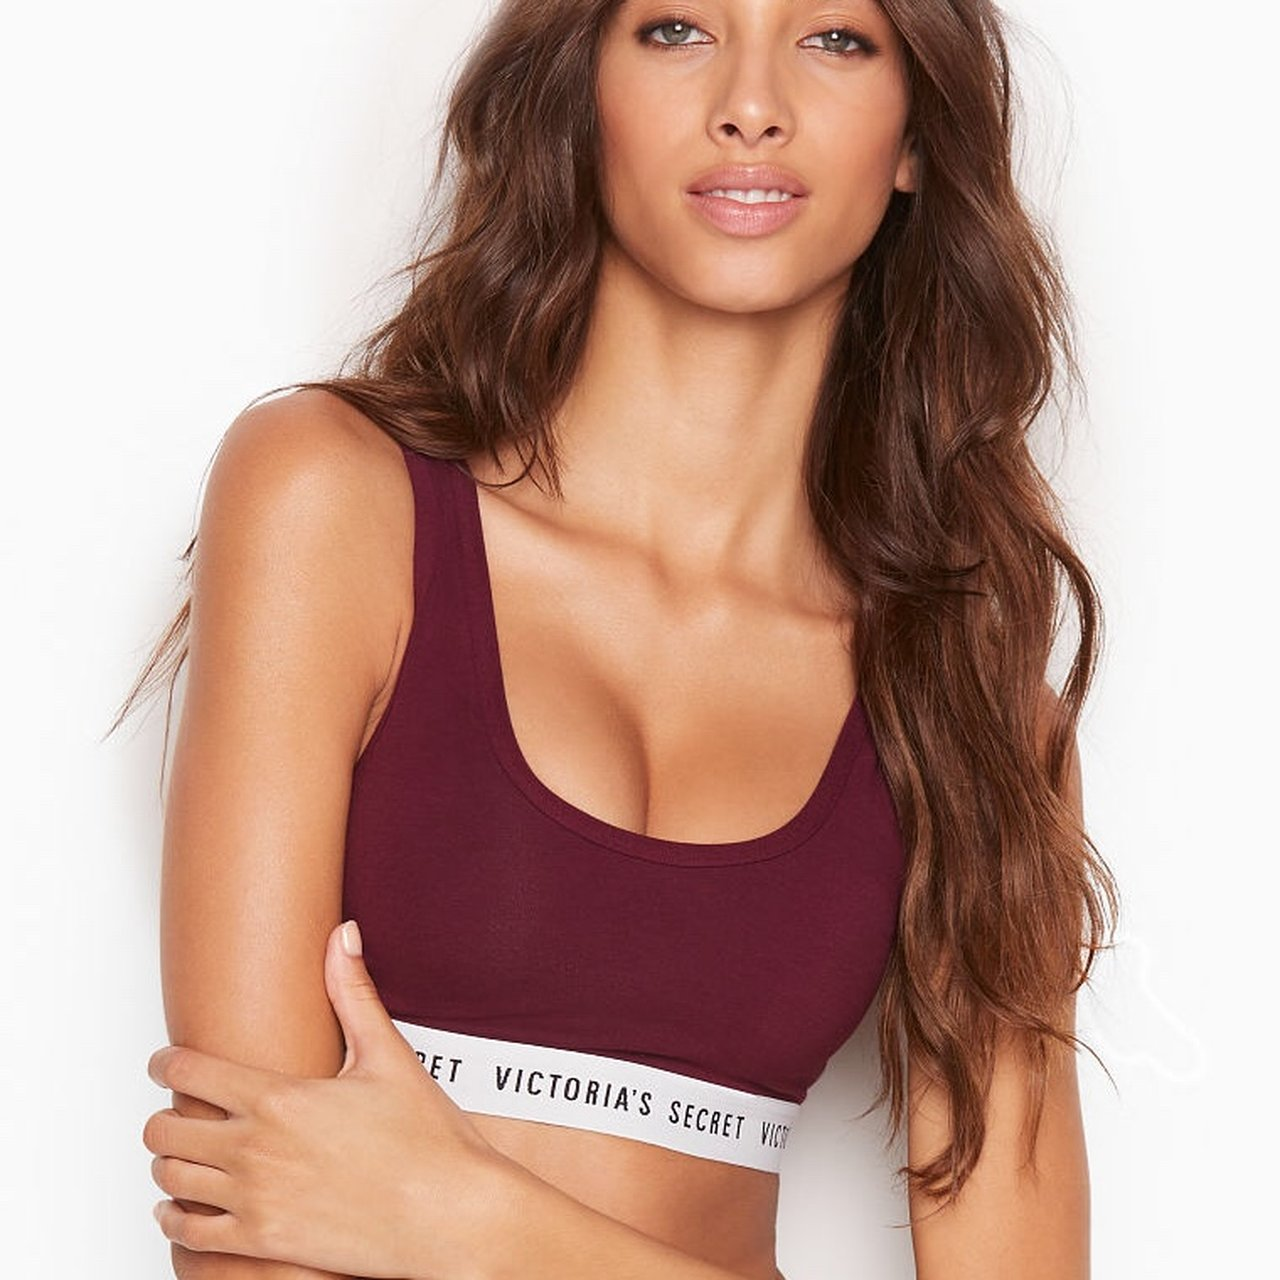 d8d1b88fb99f7 Victoria s Secret Logo Scoop Bralette in Maroon I bought M - Depop